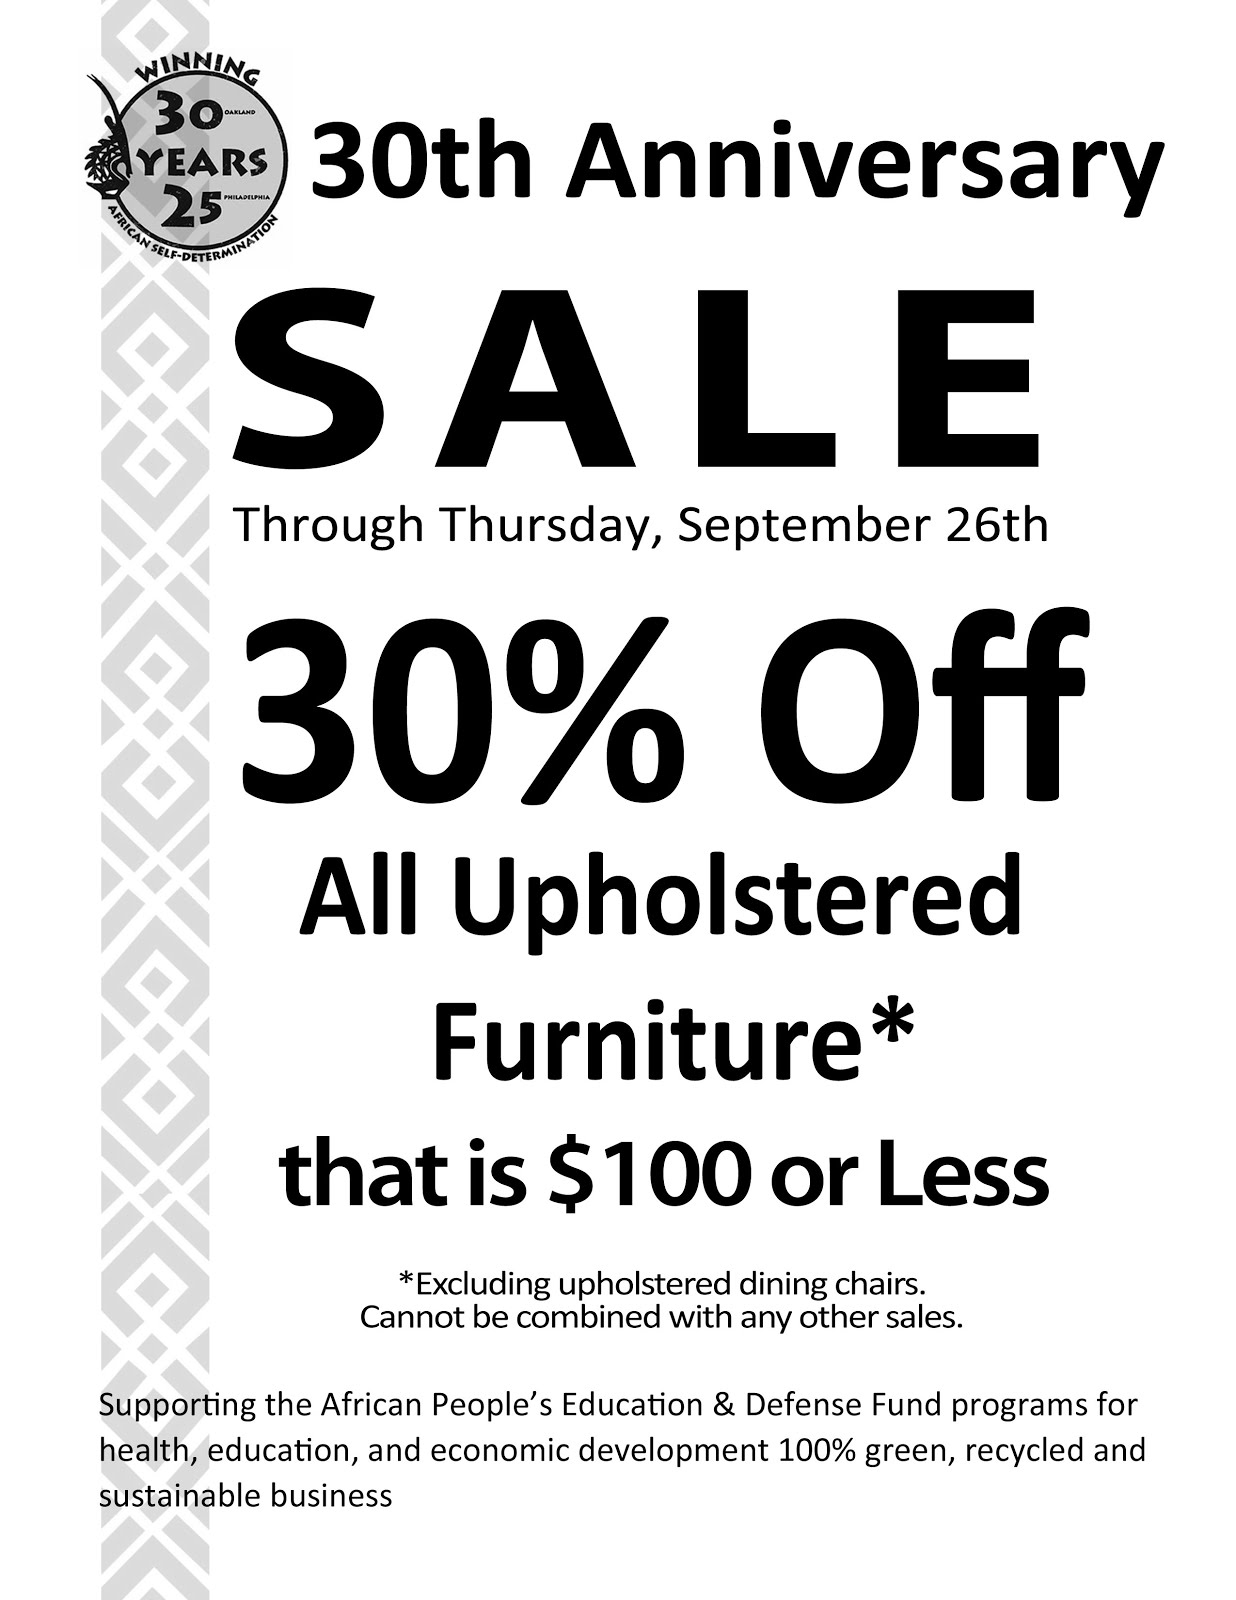 30% Off All Upholstered Furniture that is $100 or Less, now through Thursday, September 26th!